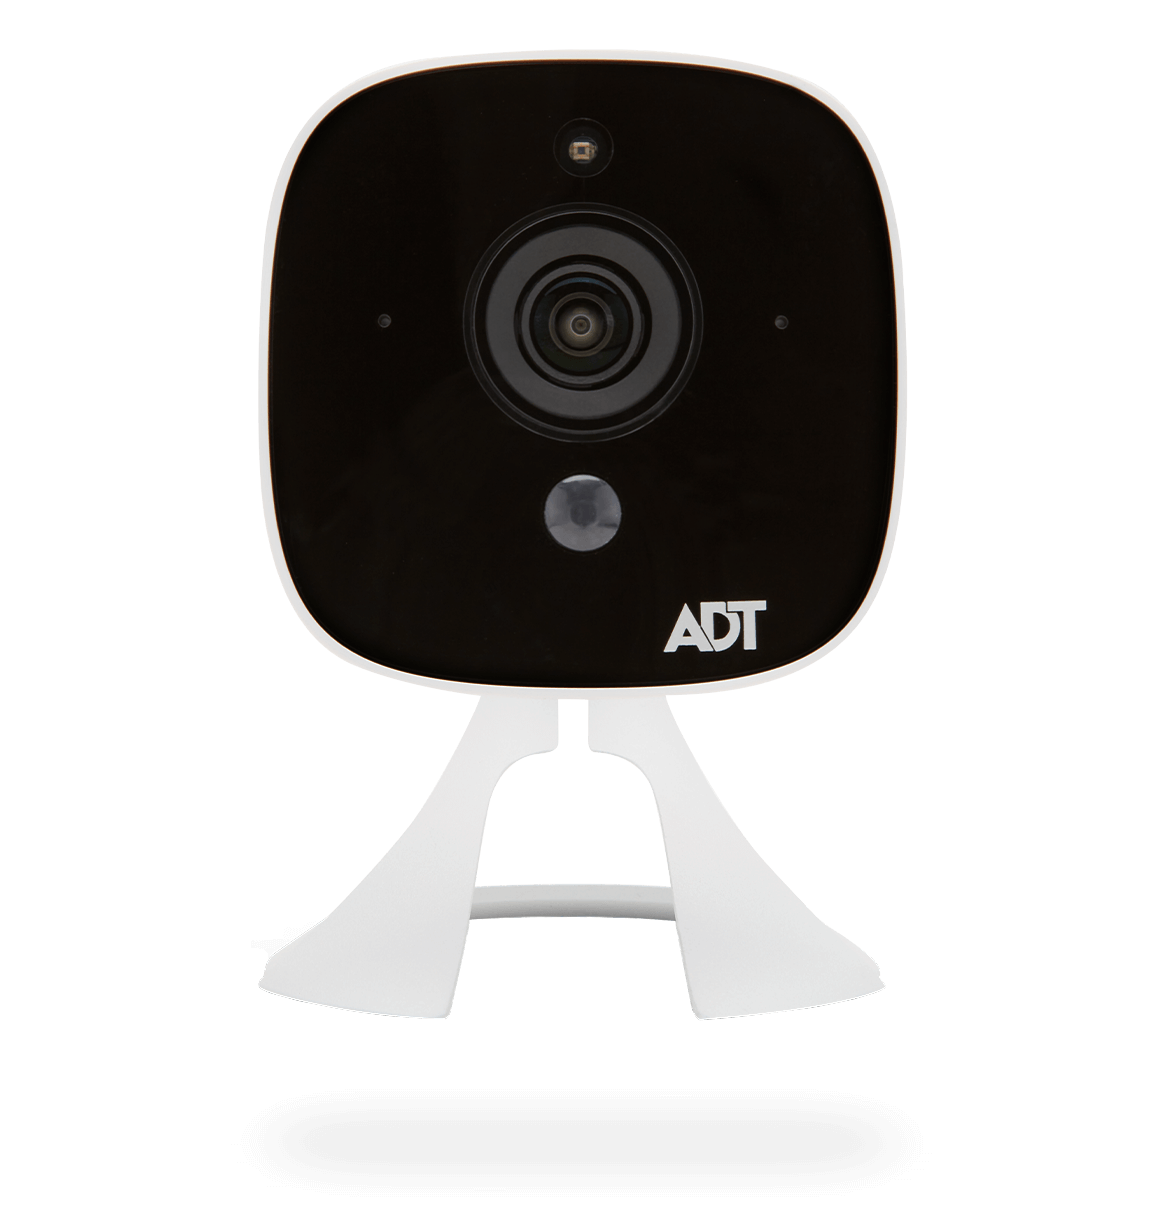 ADT Outdoor Security Cameras